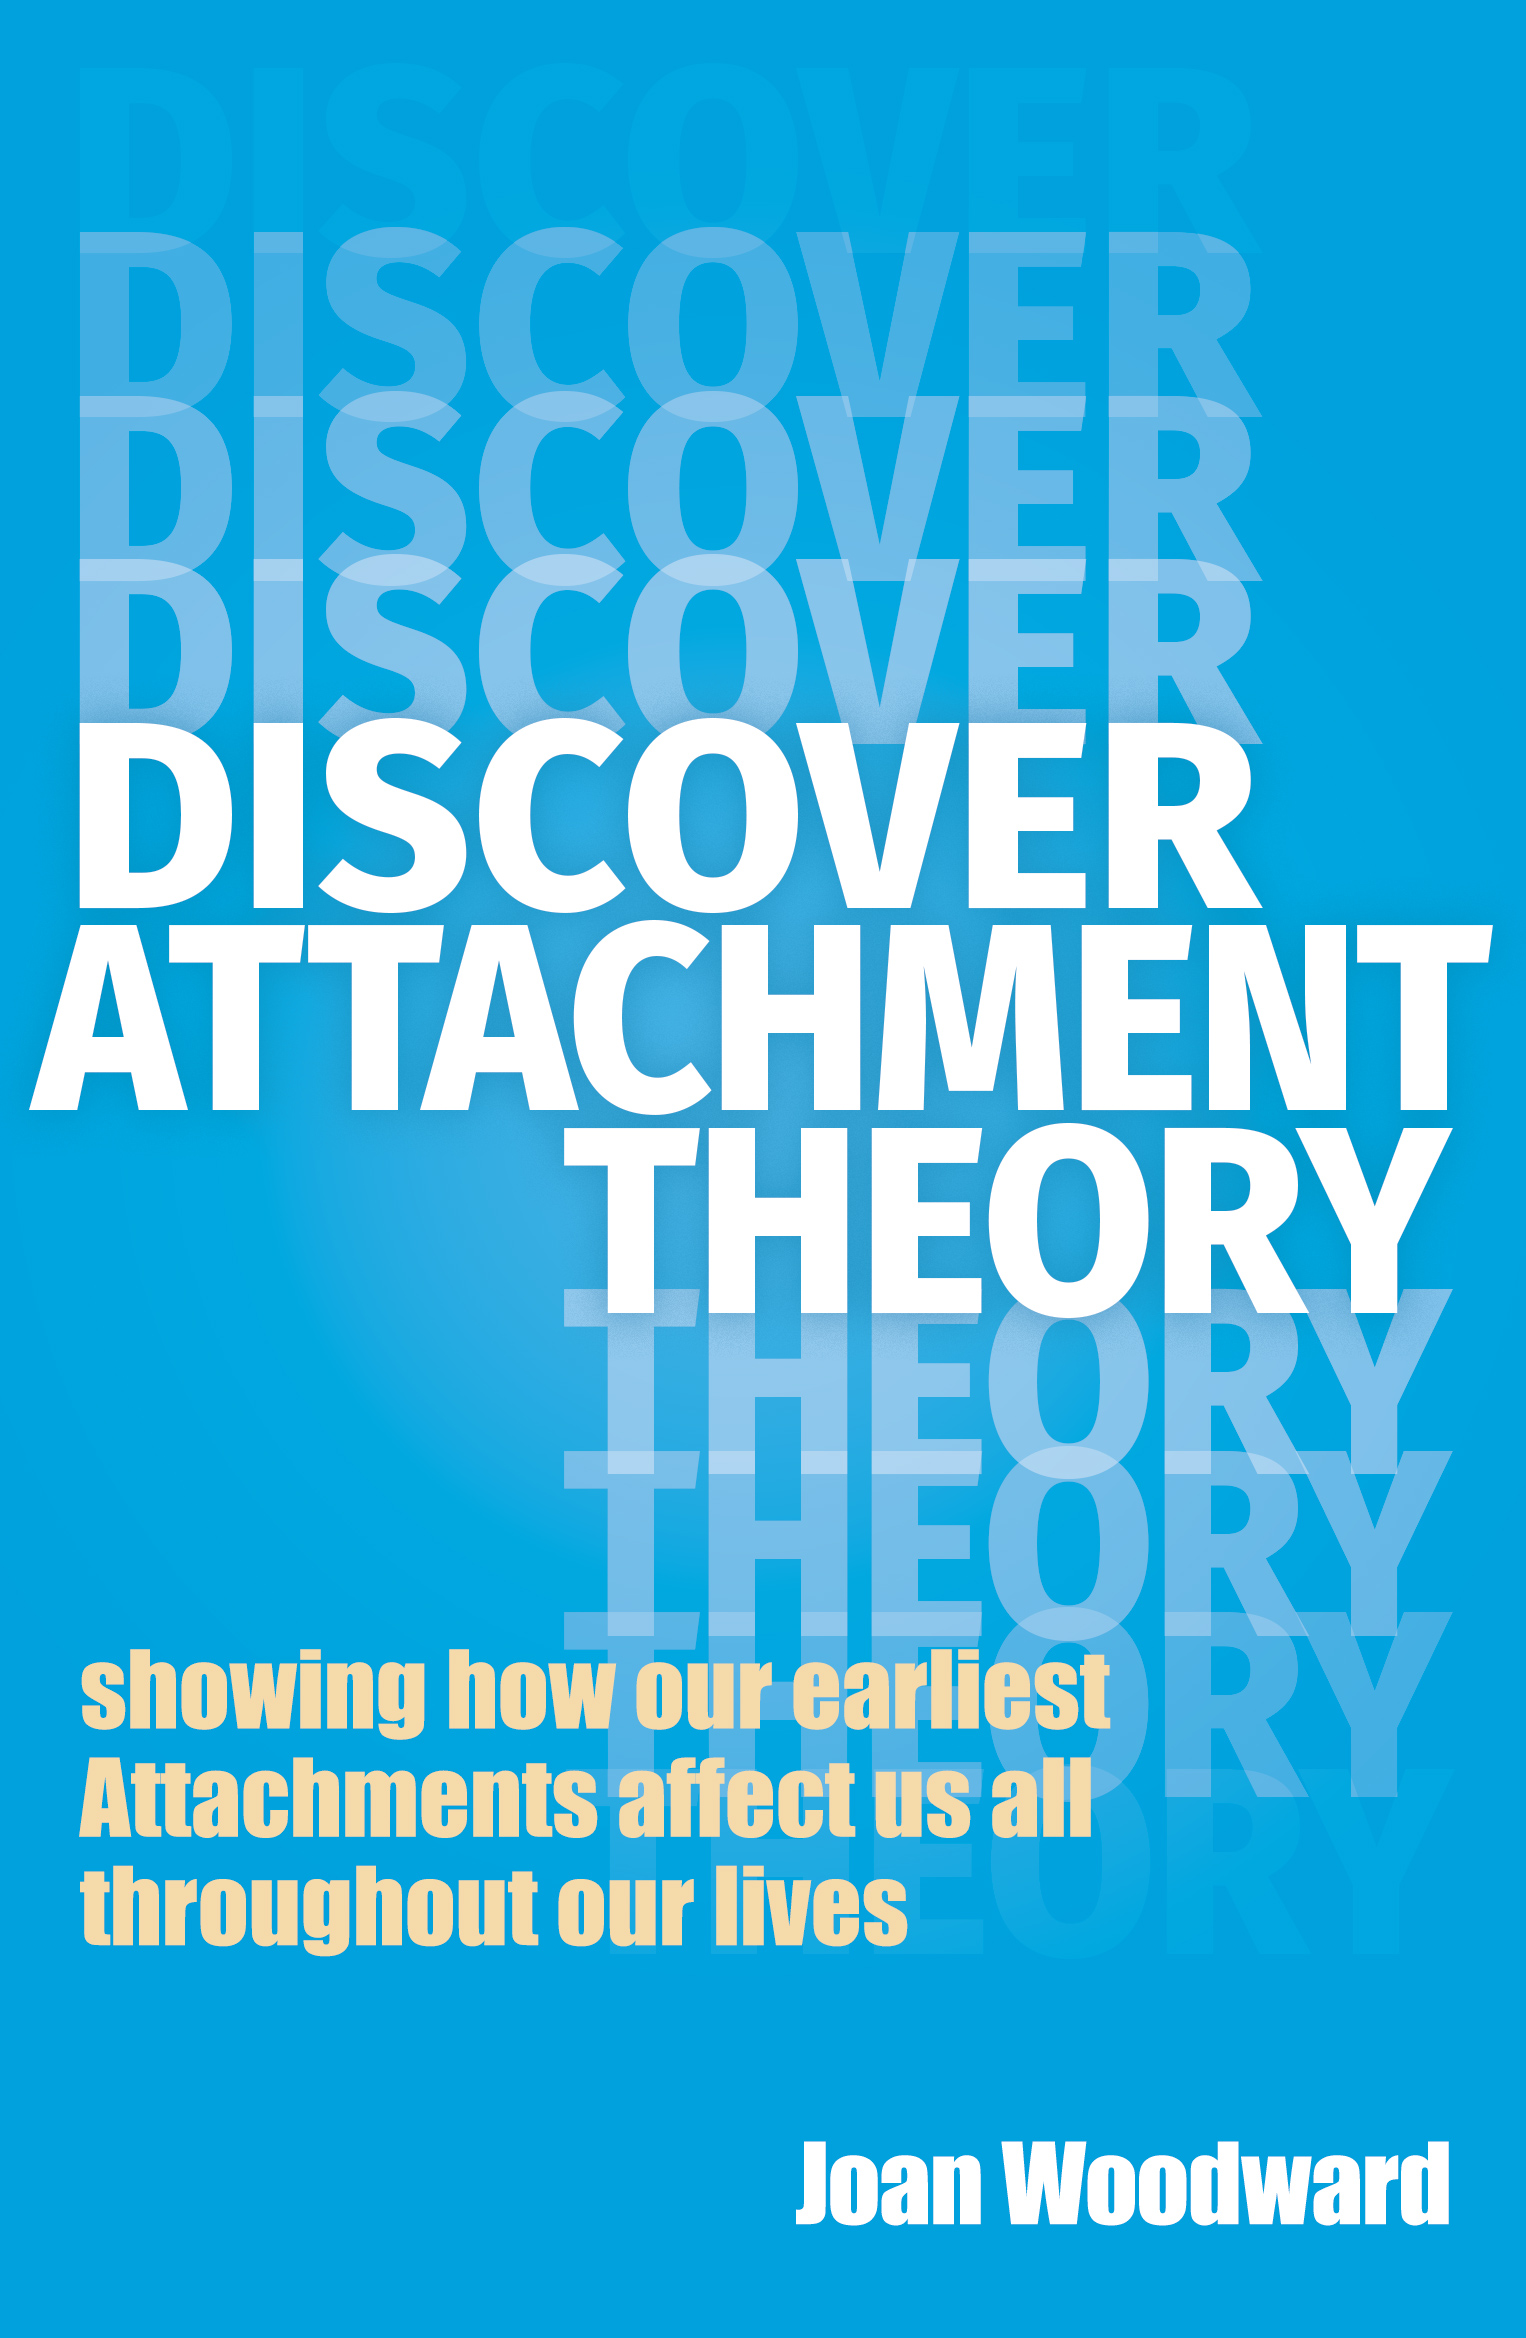 Discover Attachment Theory: showing how our earliest Attachments affect us all throughout our lives